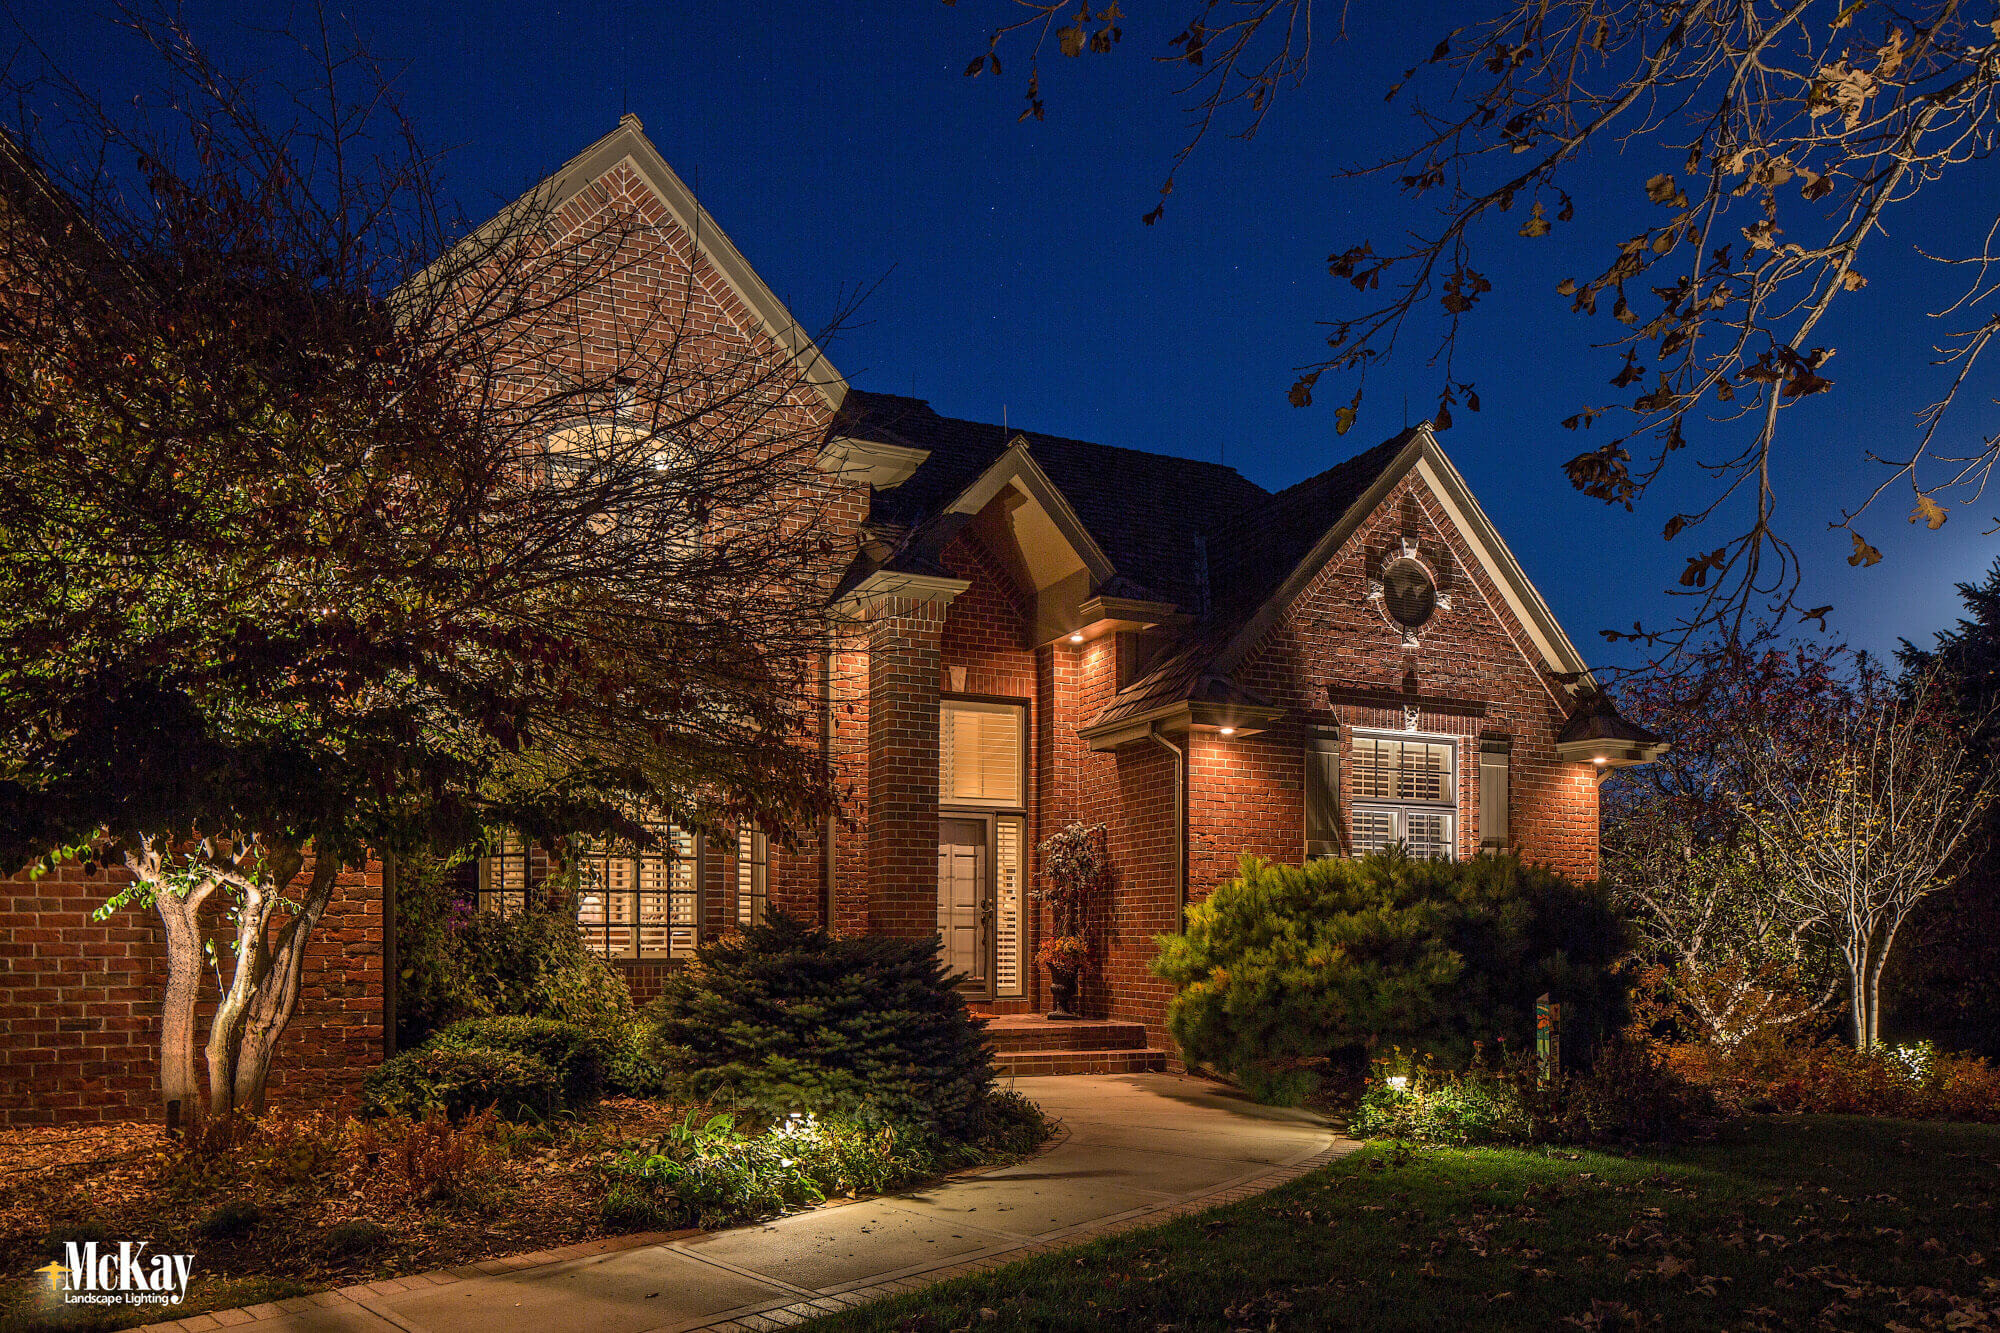 Outdoor lighting blog mckay landscape lighting part 5 led led landscape lighting has become the preferred choice among homeowners and professionals for several reasons for those of you who have a halogen lighting aloadofball Images